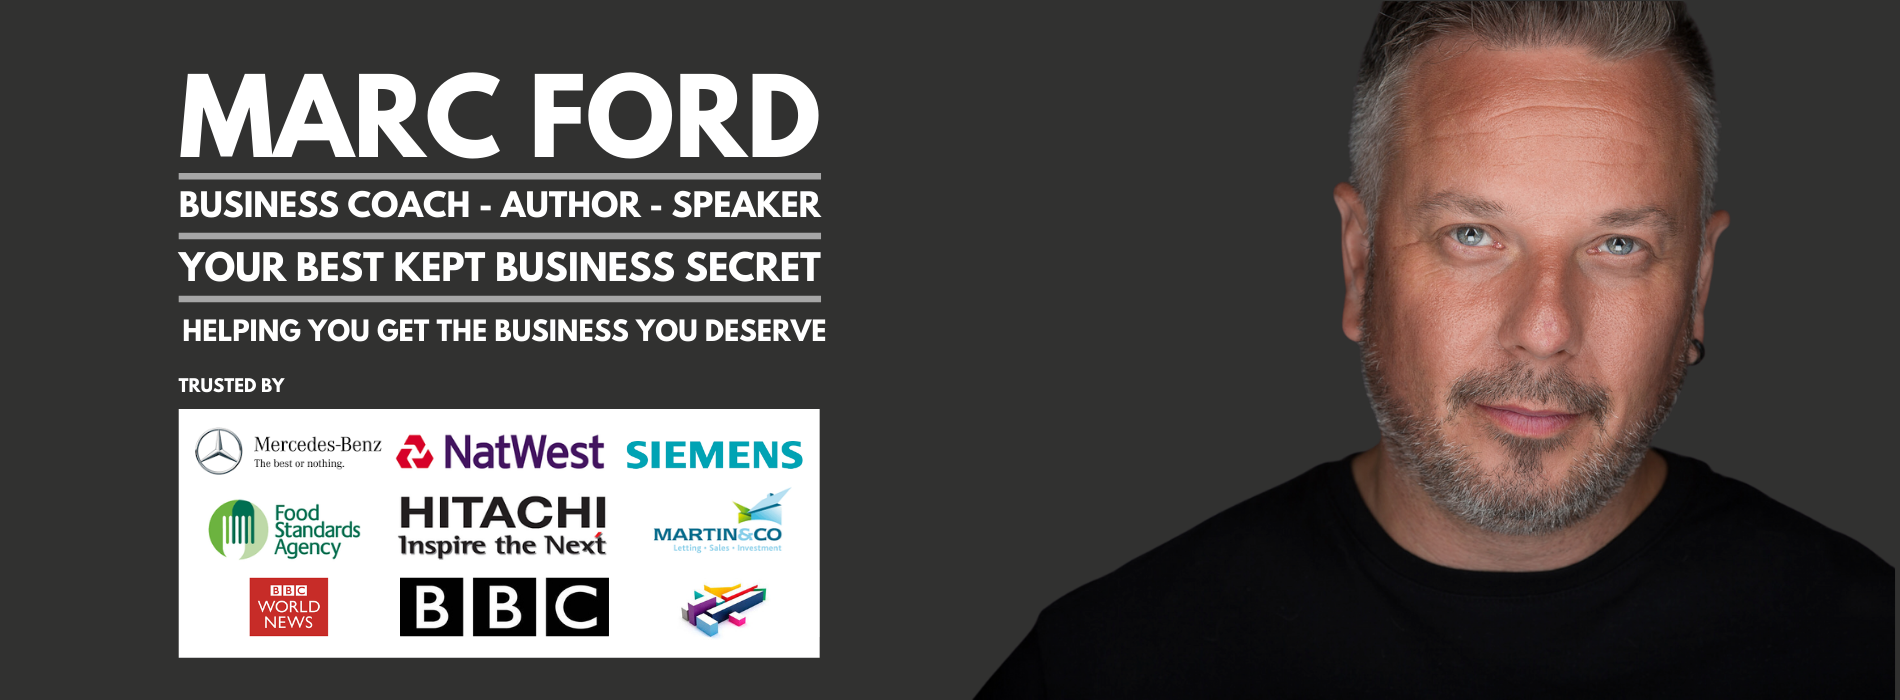 Picture of Marc Ford Business Coaching, Helping You Get The Business You Deserve, Business Coach